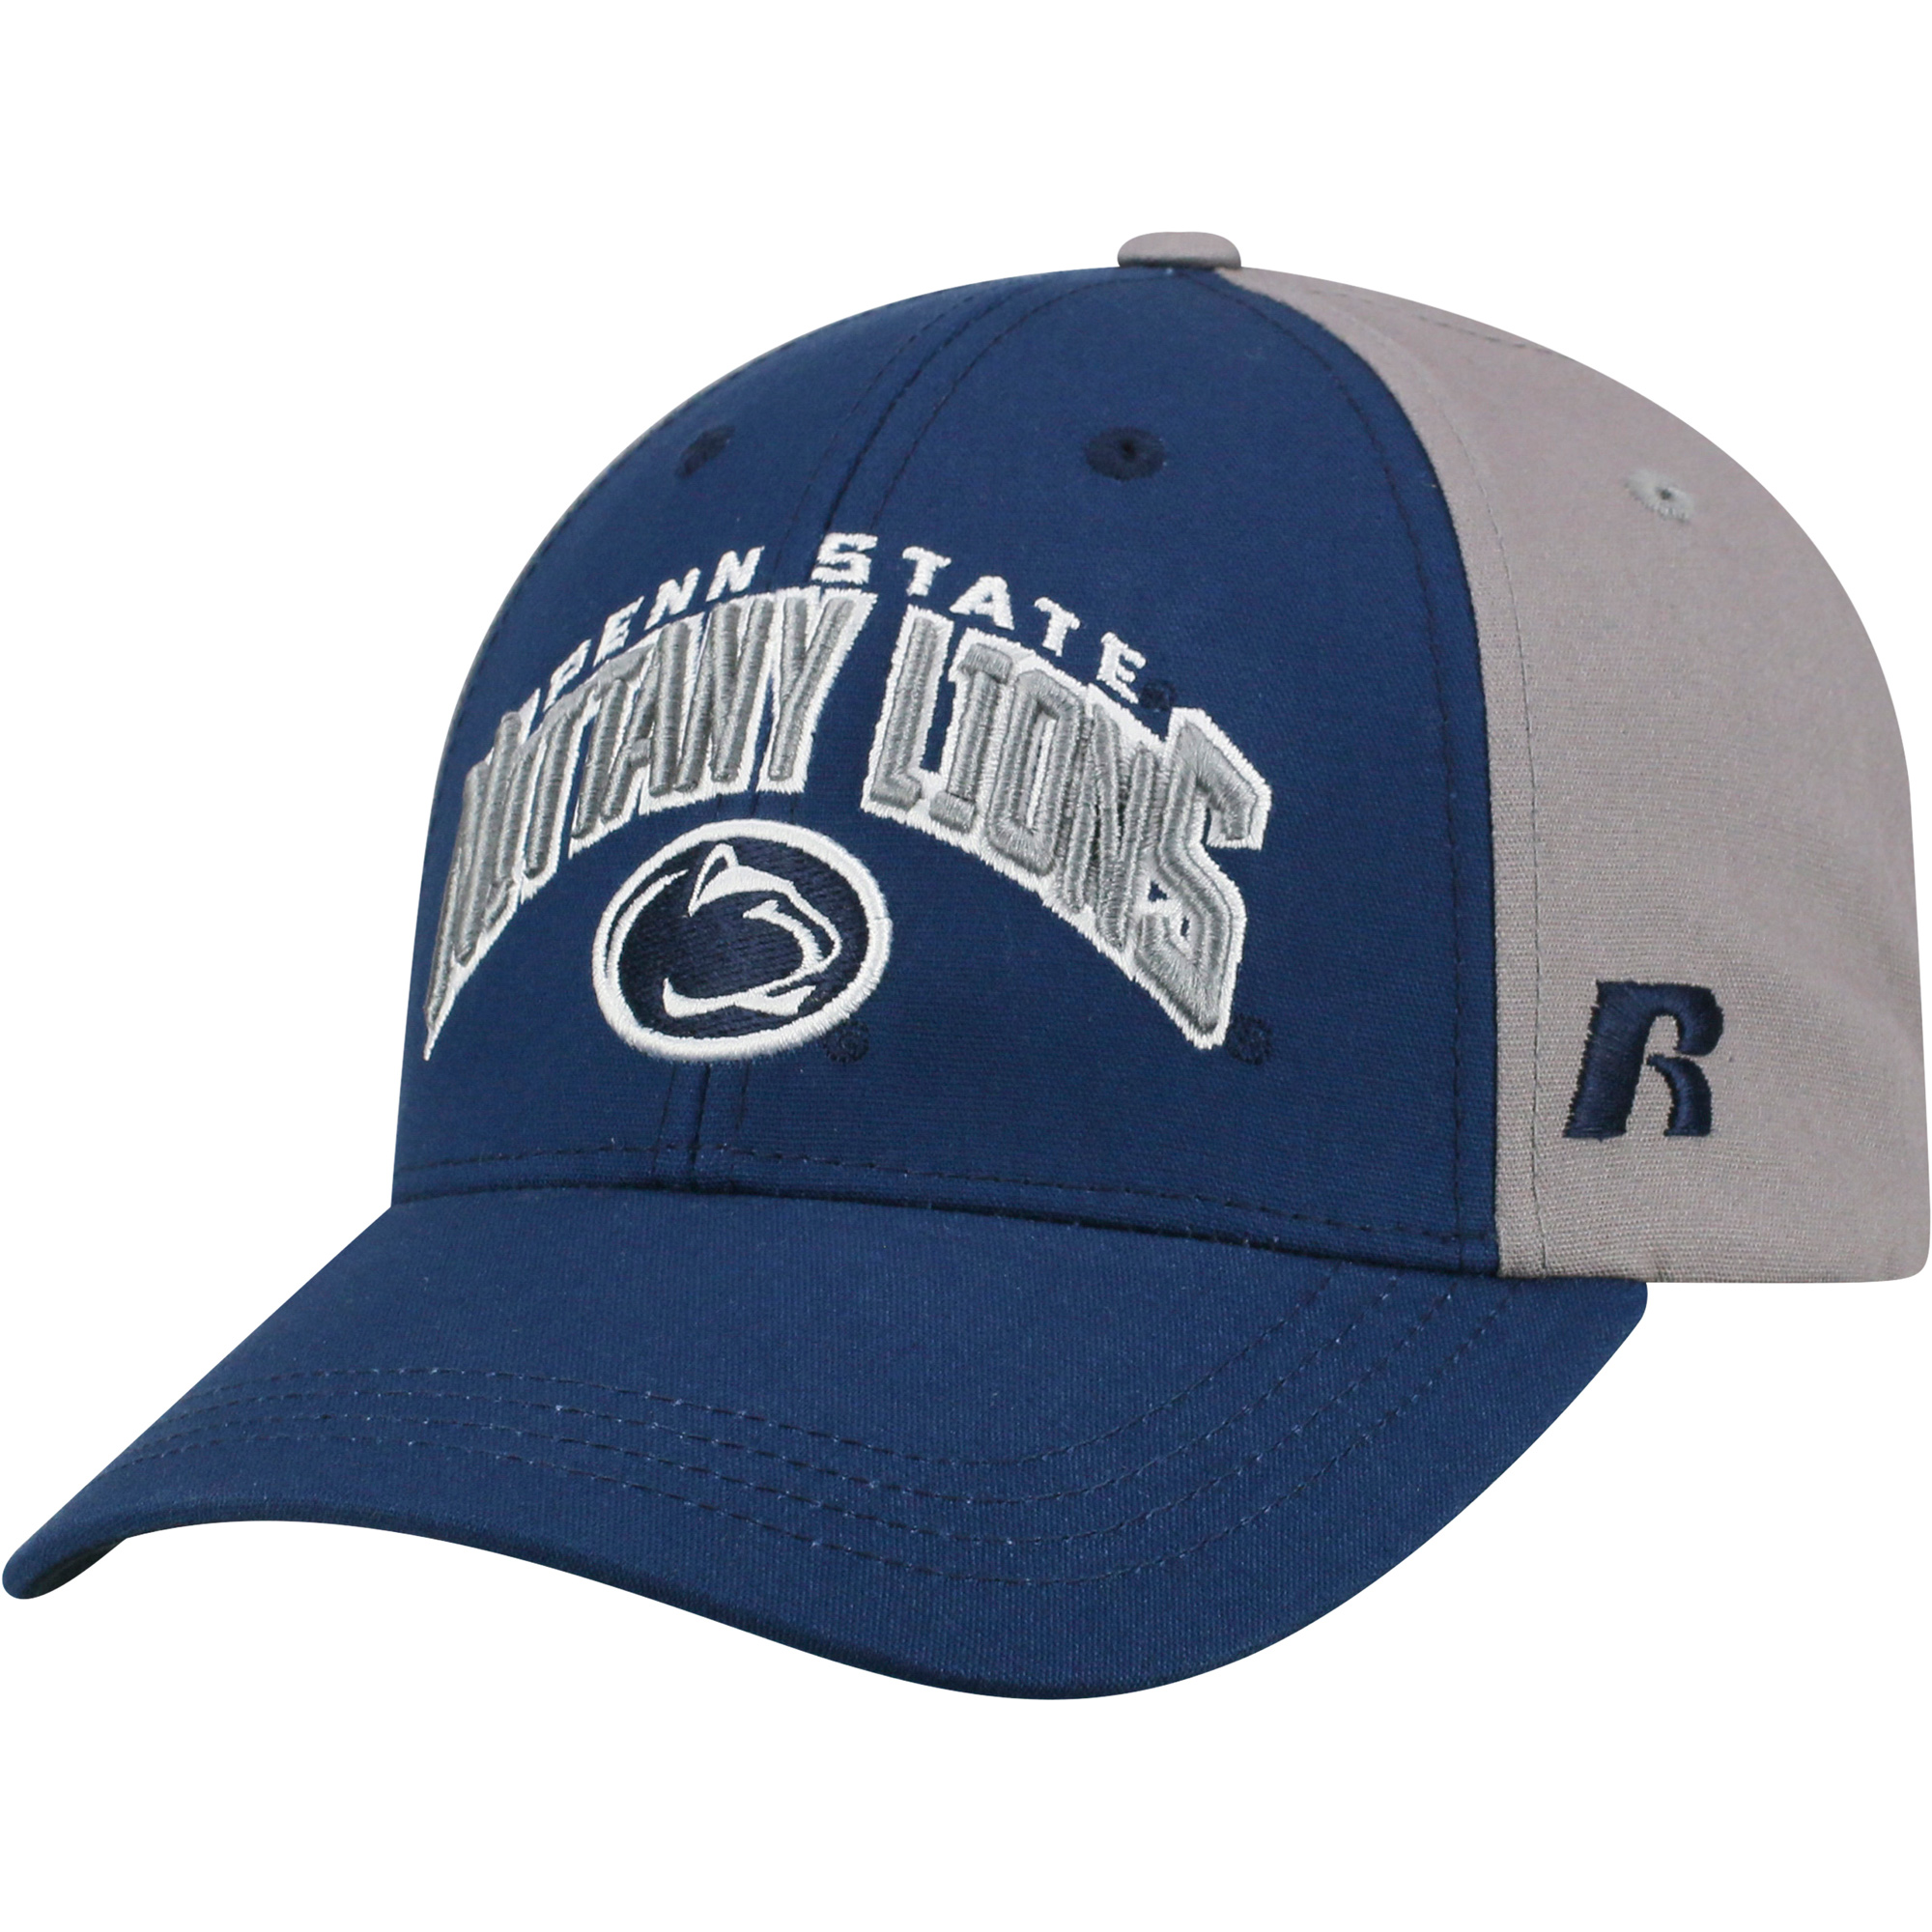 Men's Navy/Gray Penn State Nittany Lions Tastic Adjustable Hat - OSFA